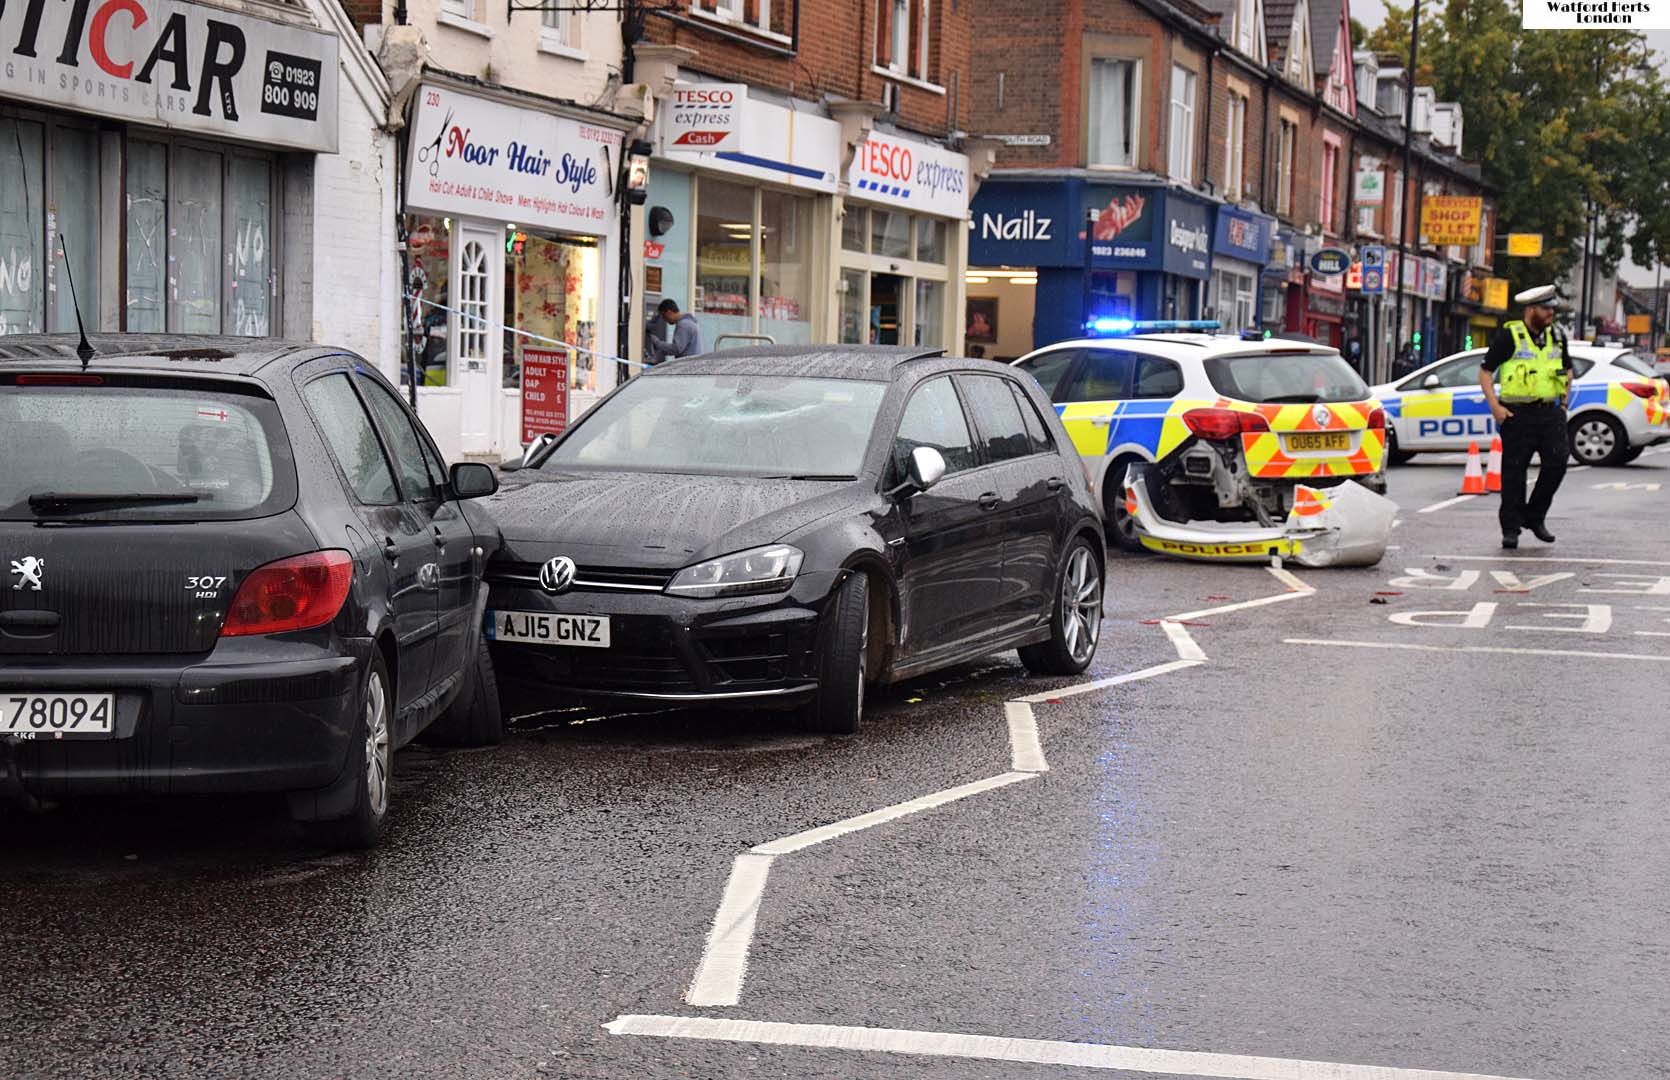 Police Chase Stolen Car Crashes on St Albans Road Watford